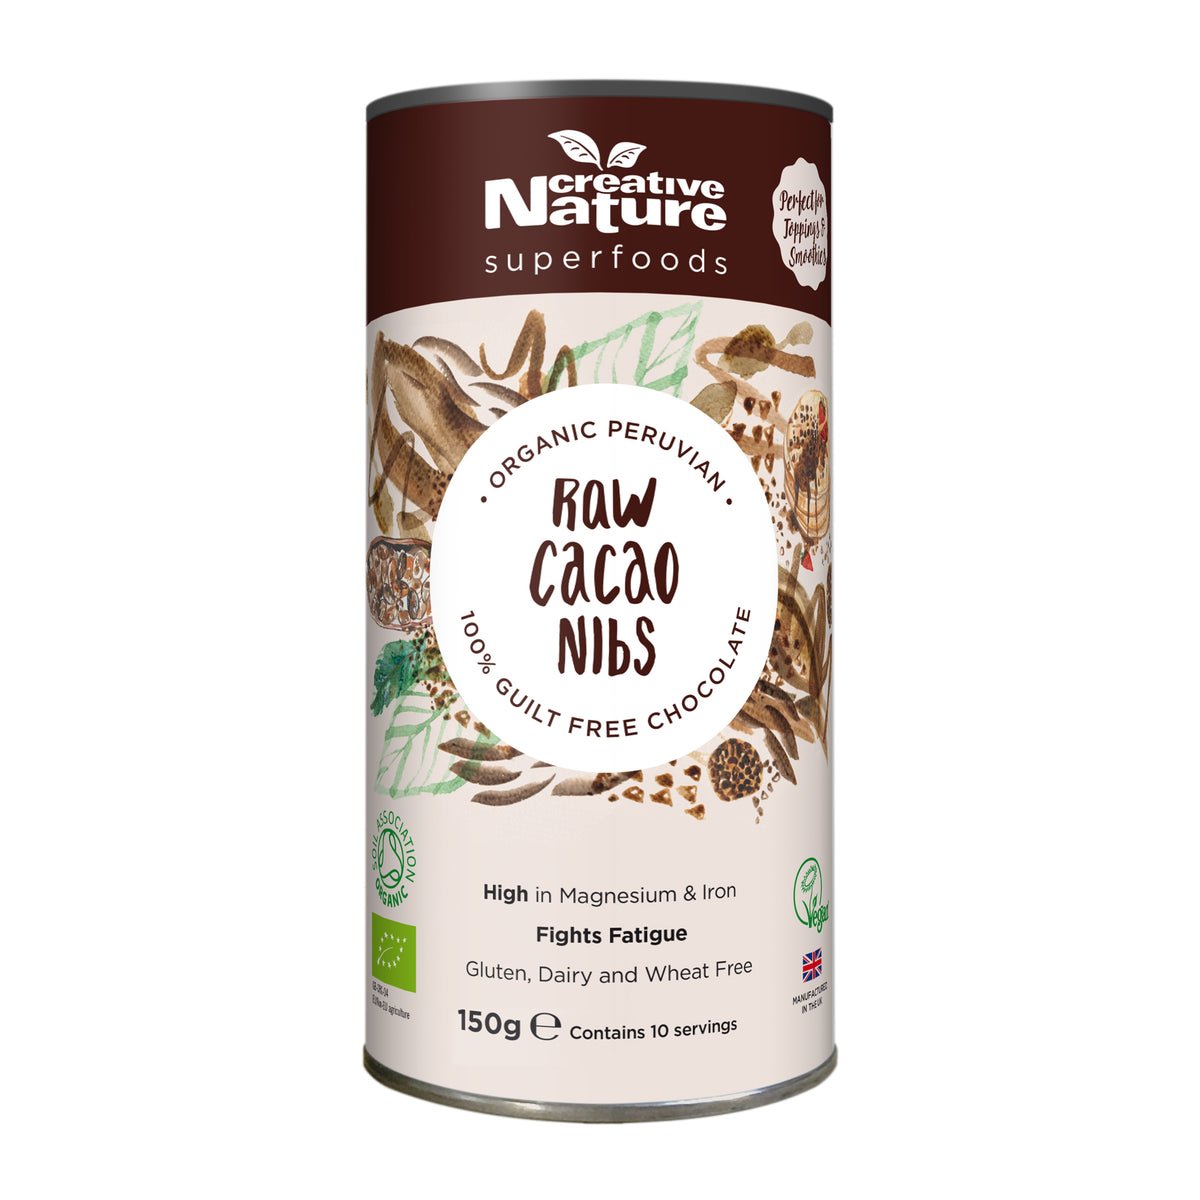 Creative Nature Organic Cacao Nibs (300g)